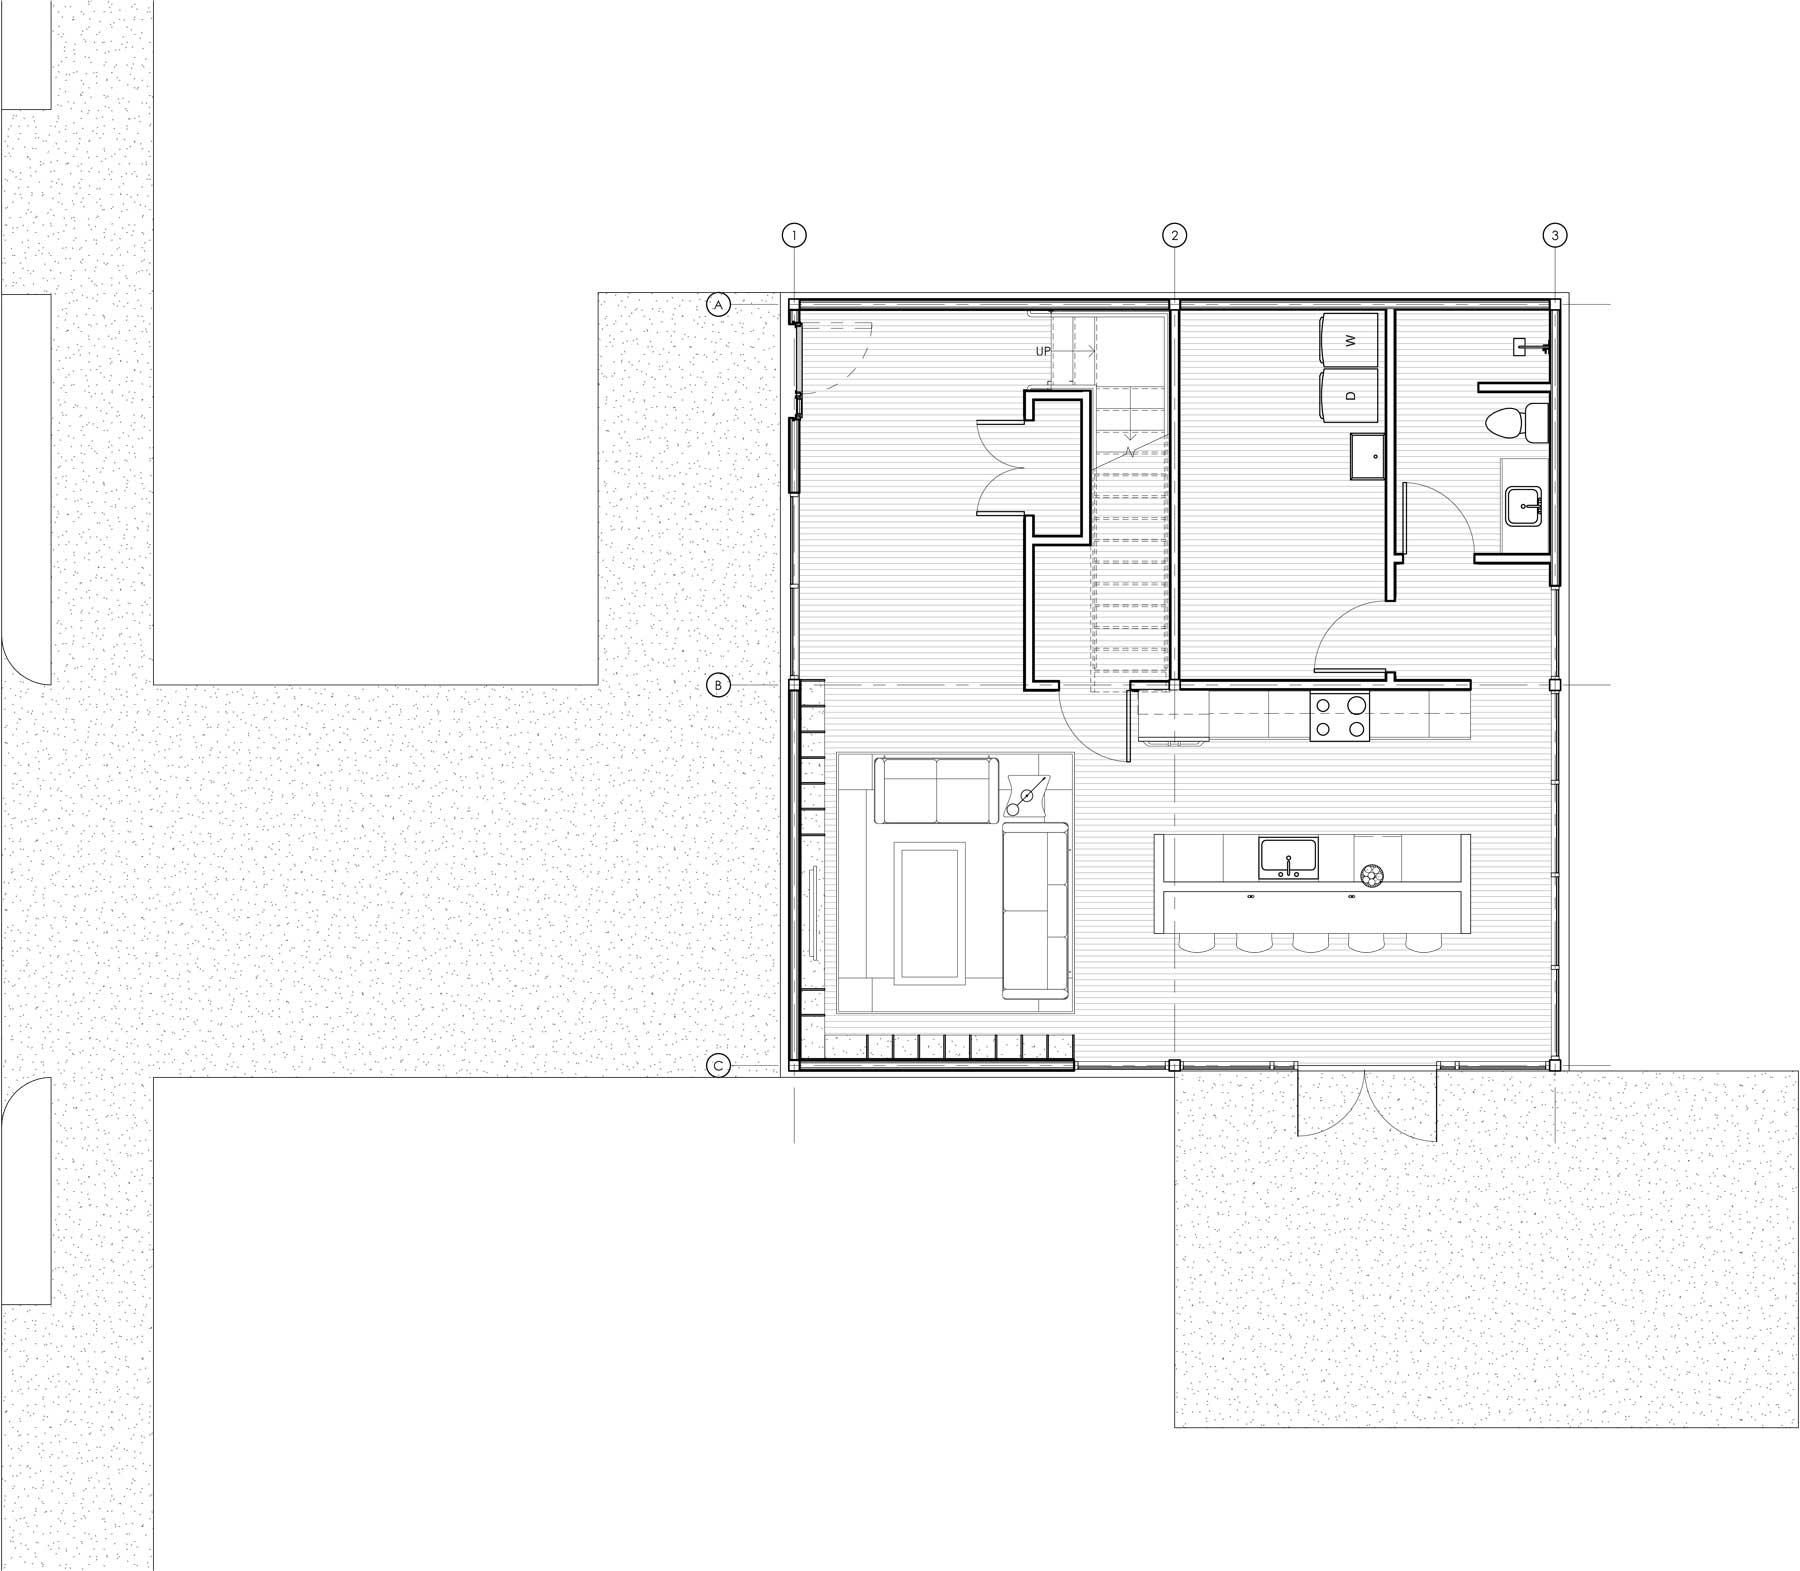 28x30-Ground-Floor-Plan-Small-Module.jpg